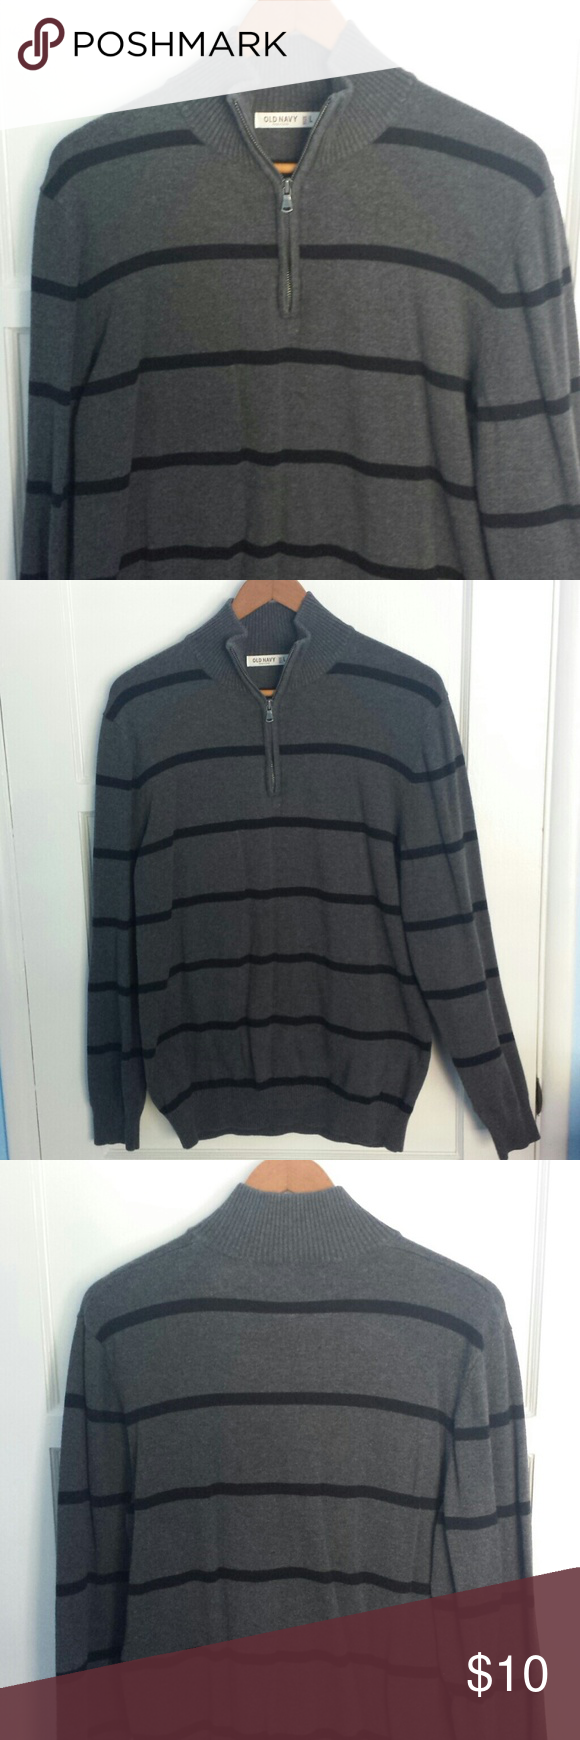 Old Navy Mens Sweater This is a used gray sweater with black lines ...